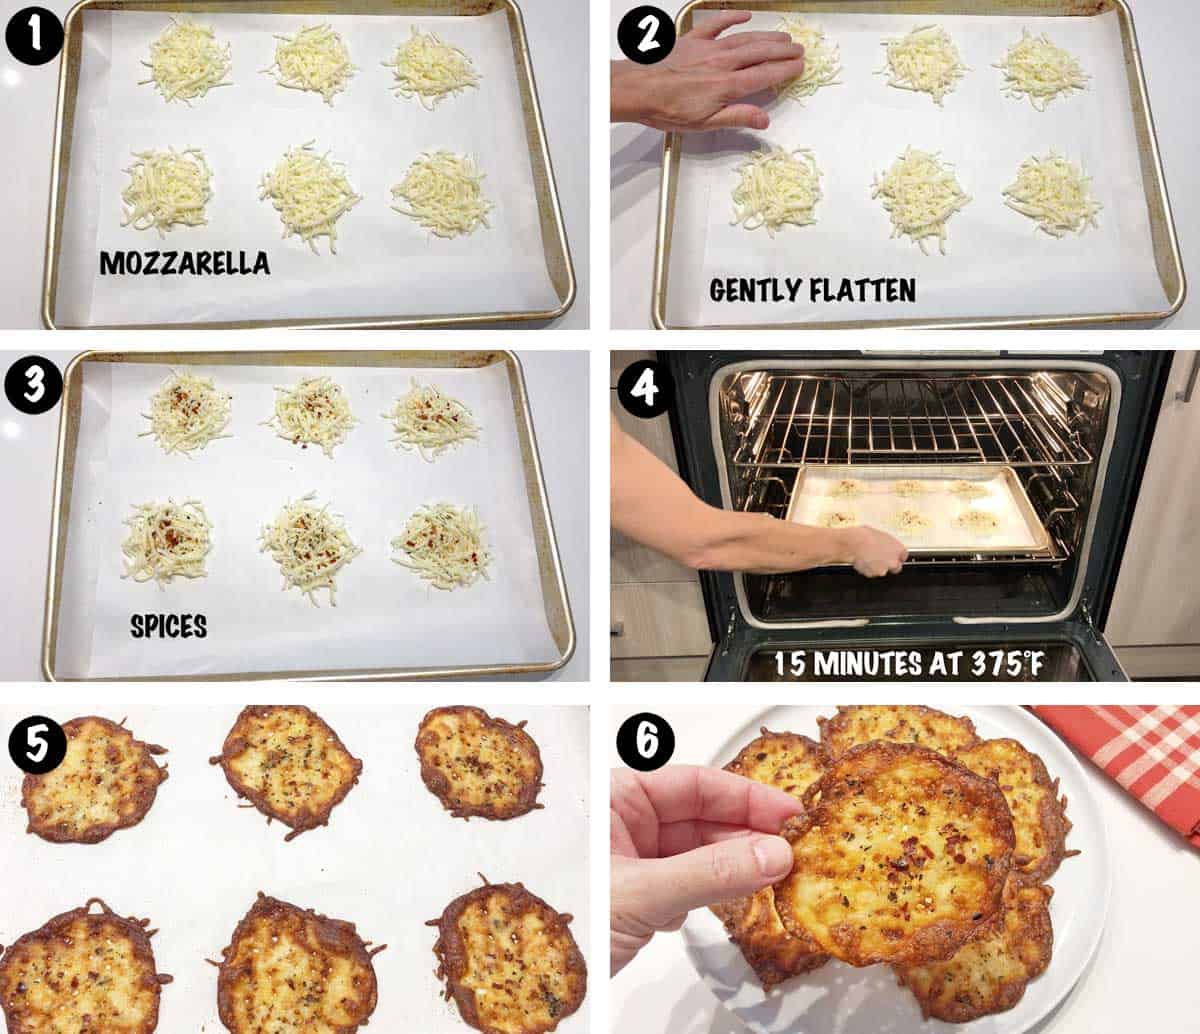 A photo collage showing the steps for making keto cheese chips.